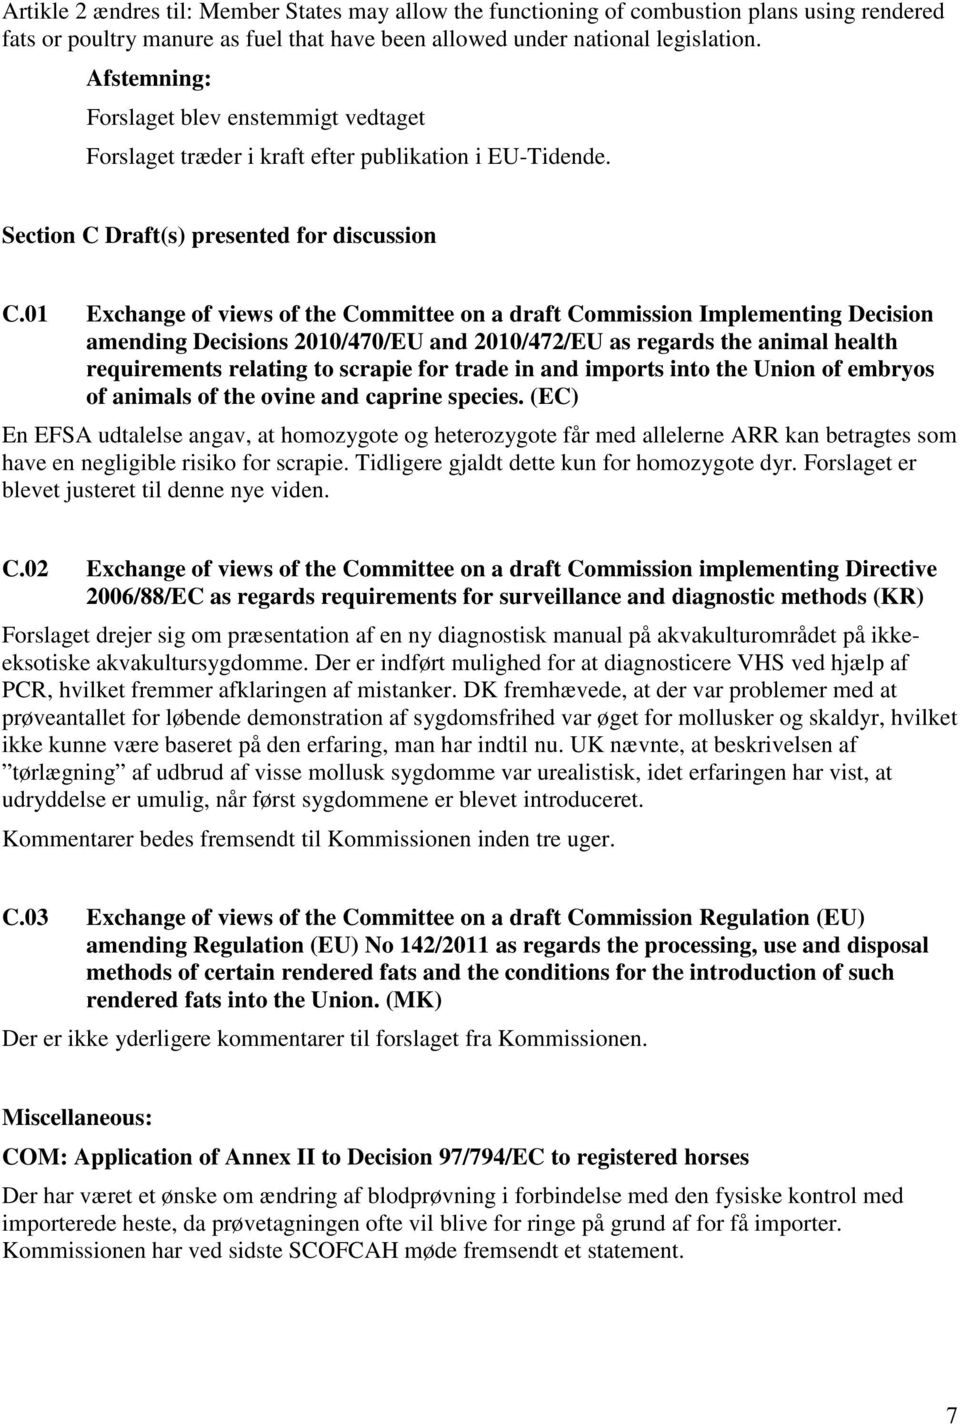 01 Exchange of views of the Committee on a draft Commission Implementing Decision amending Decisions 2010/470/EU and 2010/472/EU as regards the animal health requirements relating to scrapie for